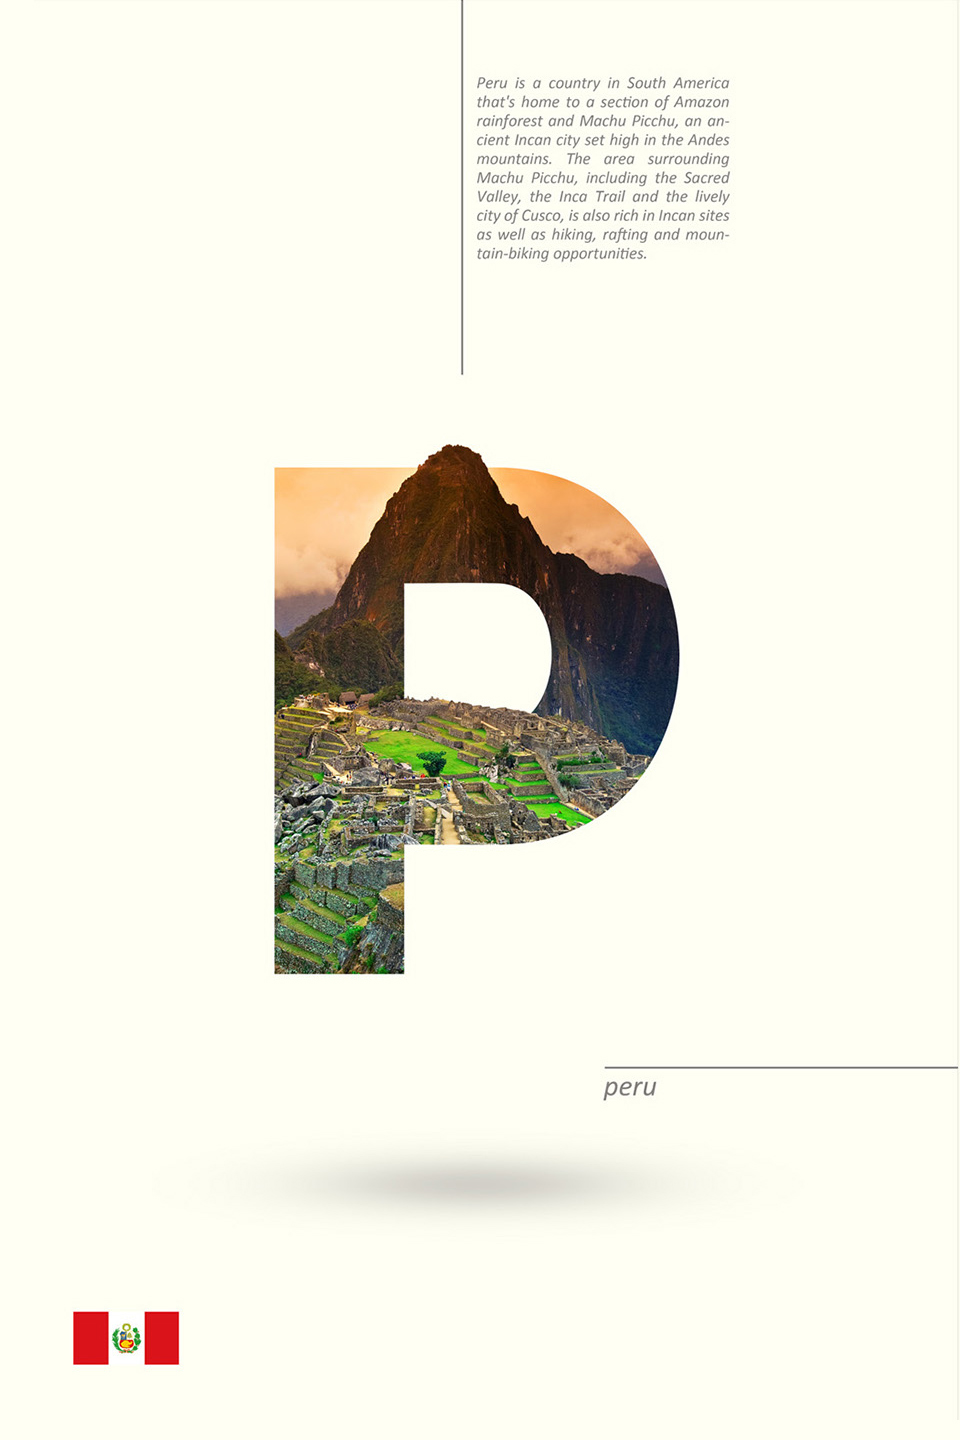 Beautiful Alphabet Series Of Countries And Their Iconic Landmarks - Peru